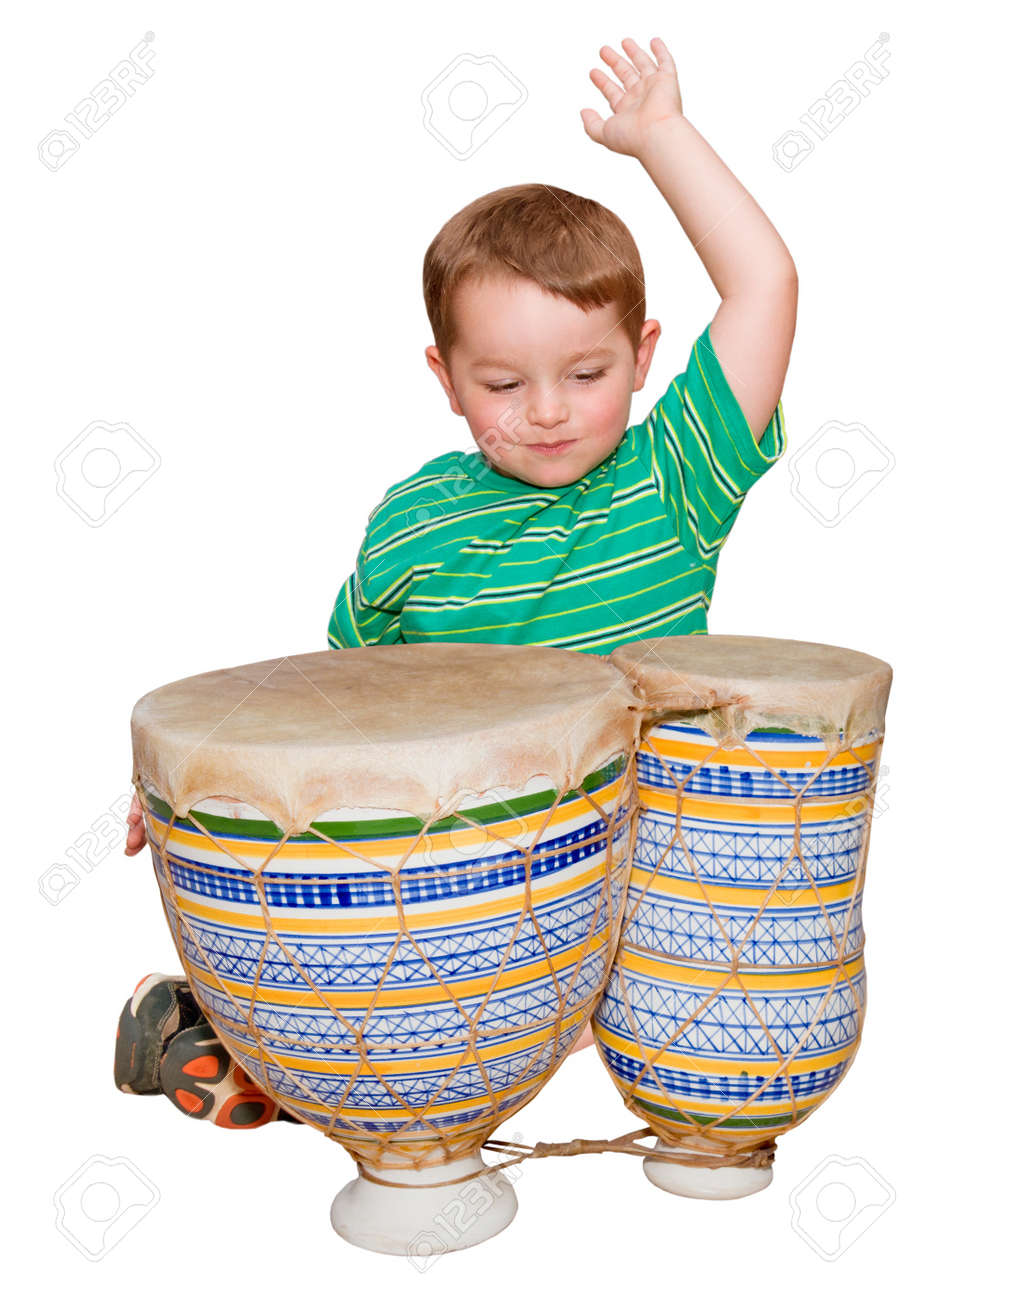 Young boy plays African bongo tom-tom drums, isolated on white background Stock Photo - 9747812